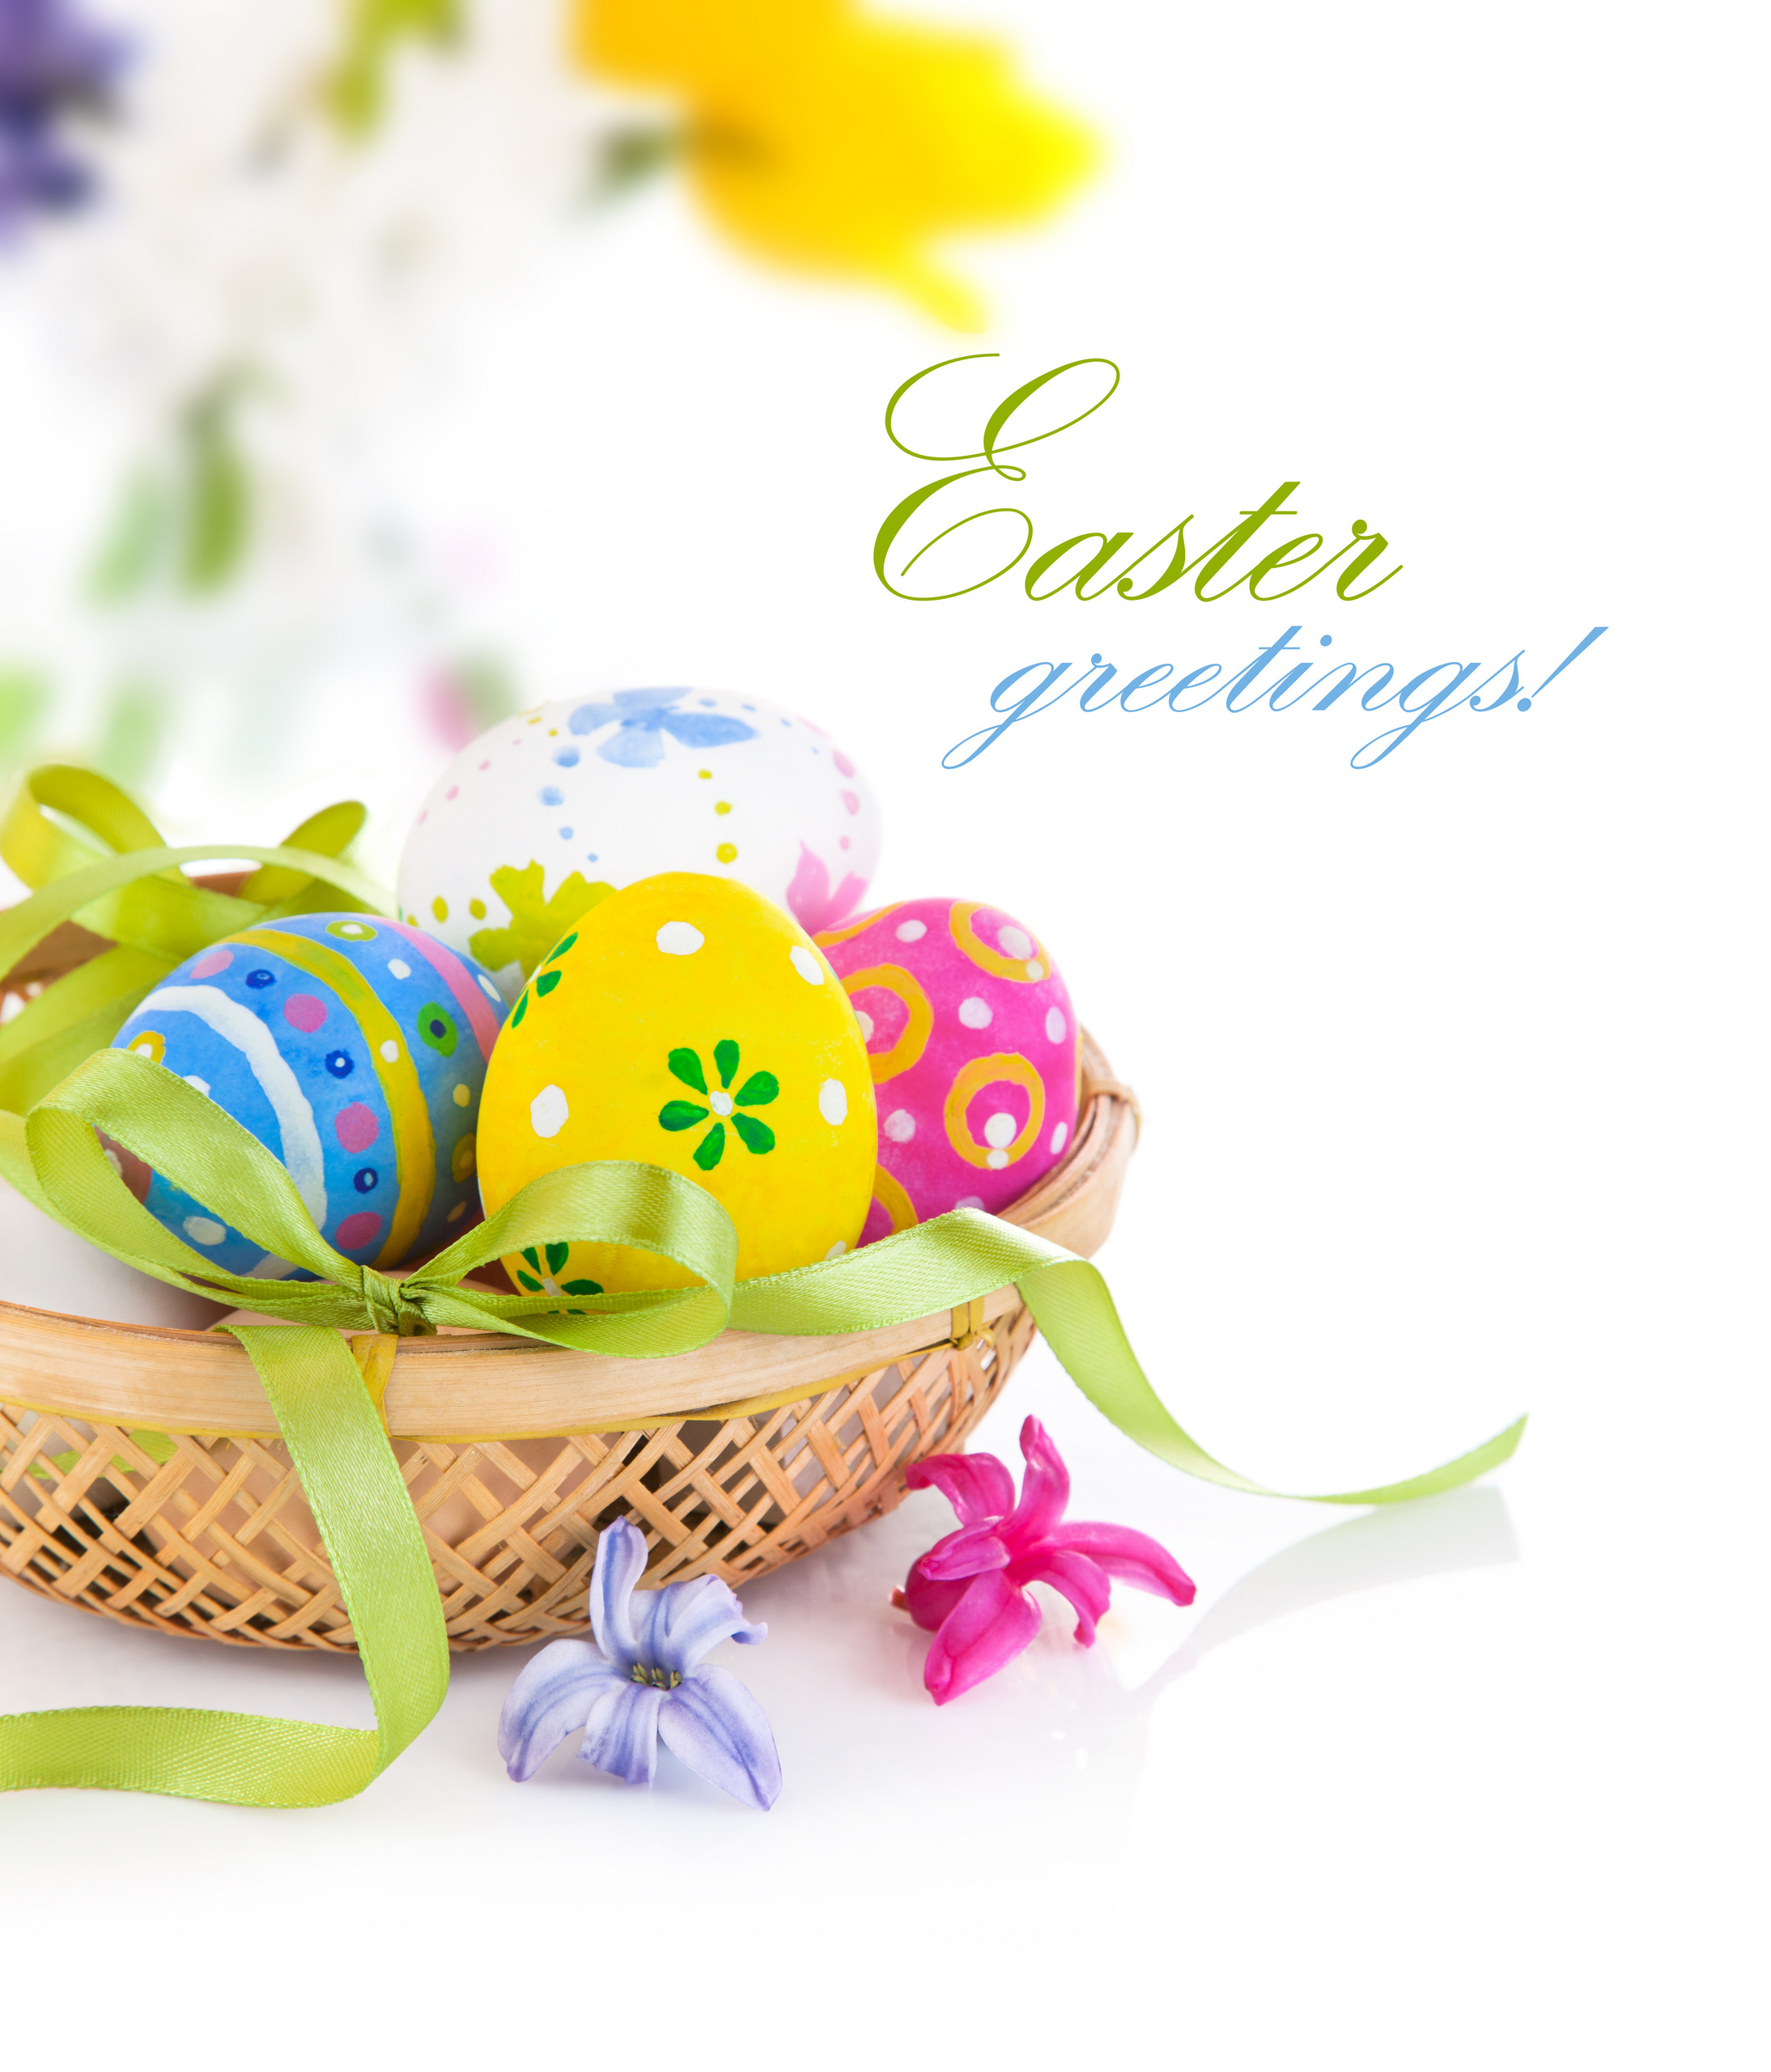 Easter images easter greeting card hd wallpaper and background easter images easter greeting card hd wallpaper and background photos m4hsunfo